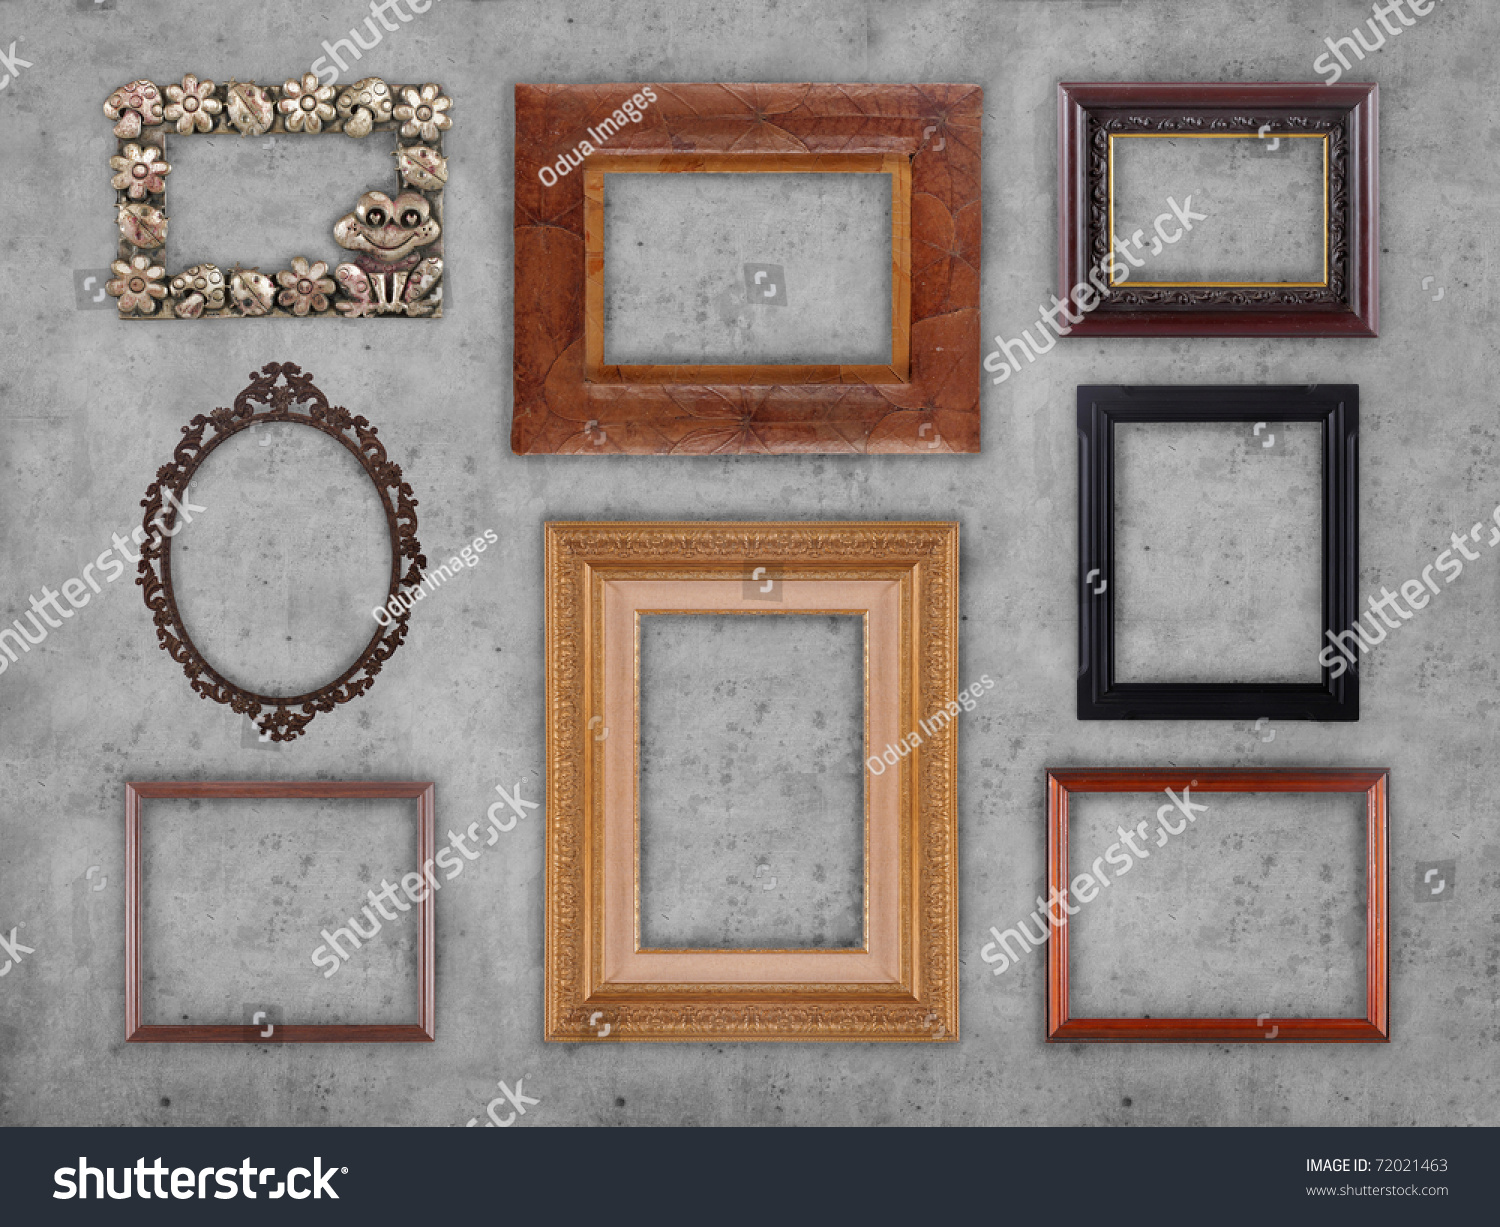 many different type of frames on the wall